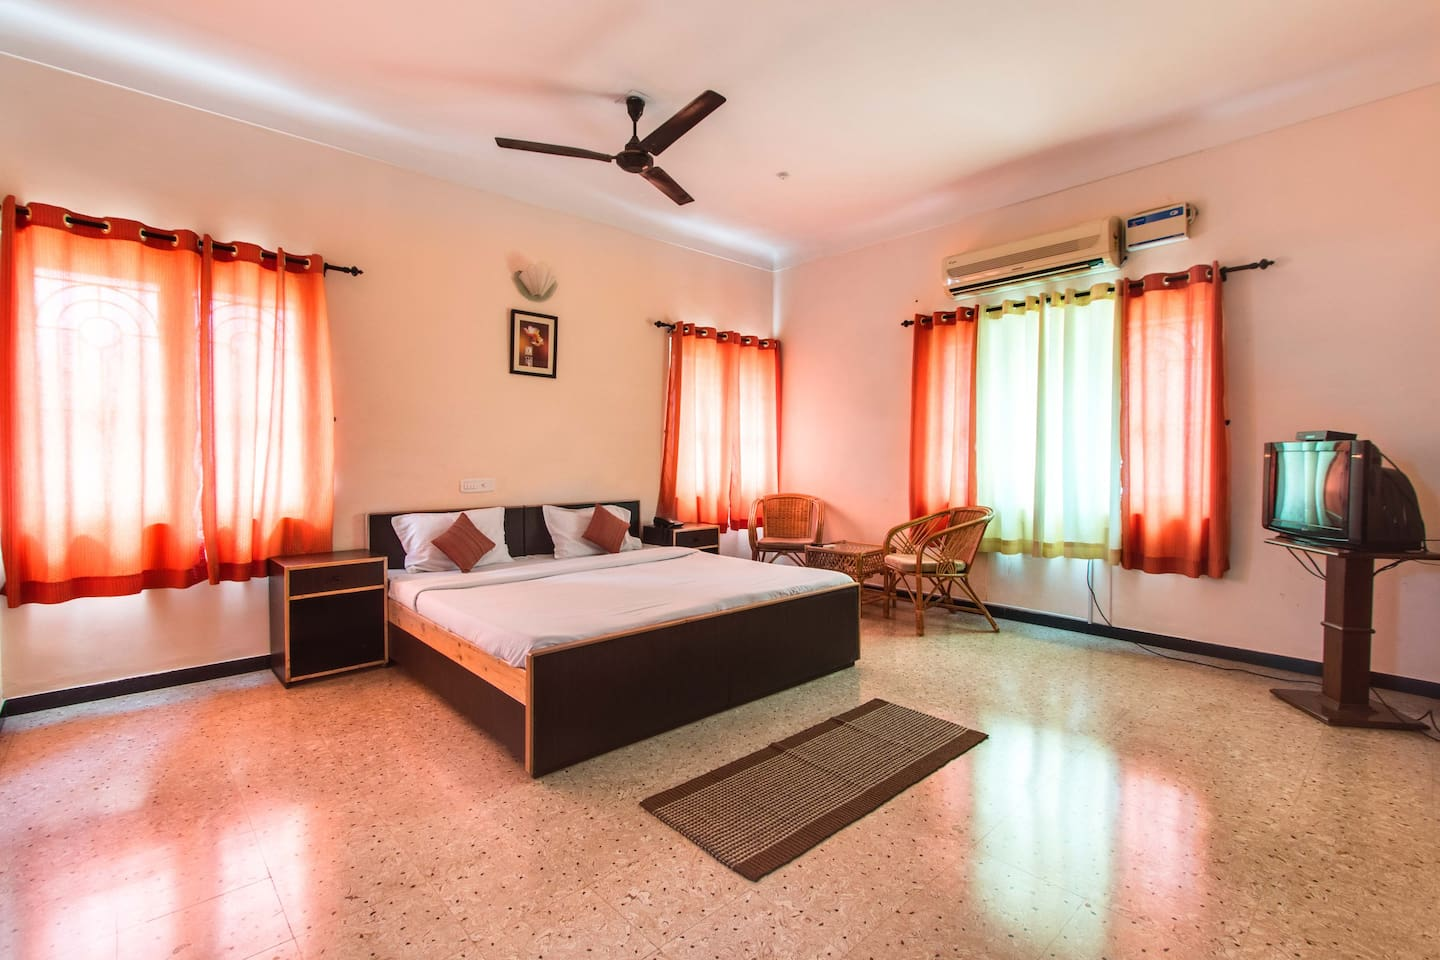 Bedroom Designs With Attached Bathroom And Dressing Room cornerstay- racecourse- 3 bhk - bed & breakfasts for rent in